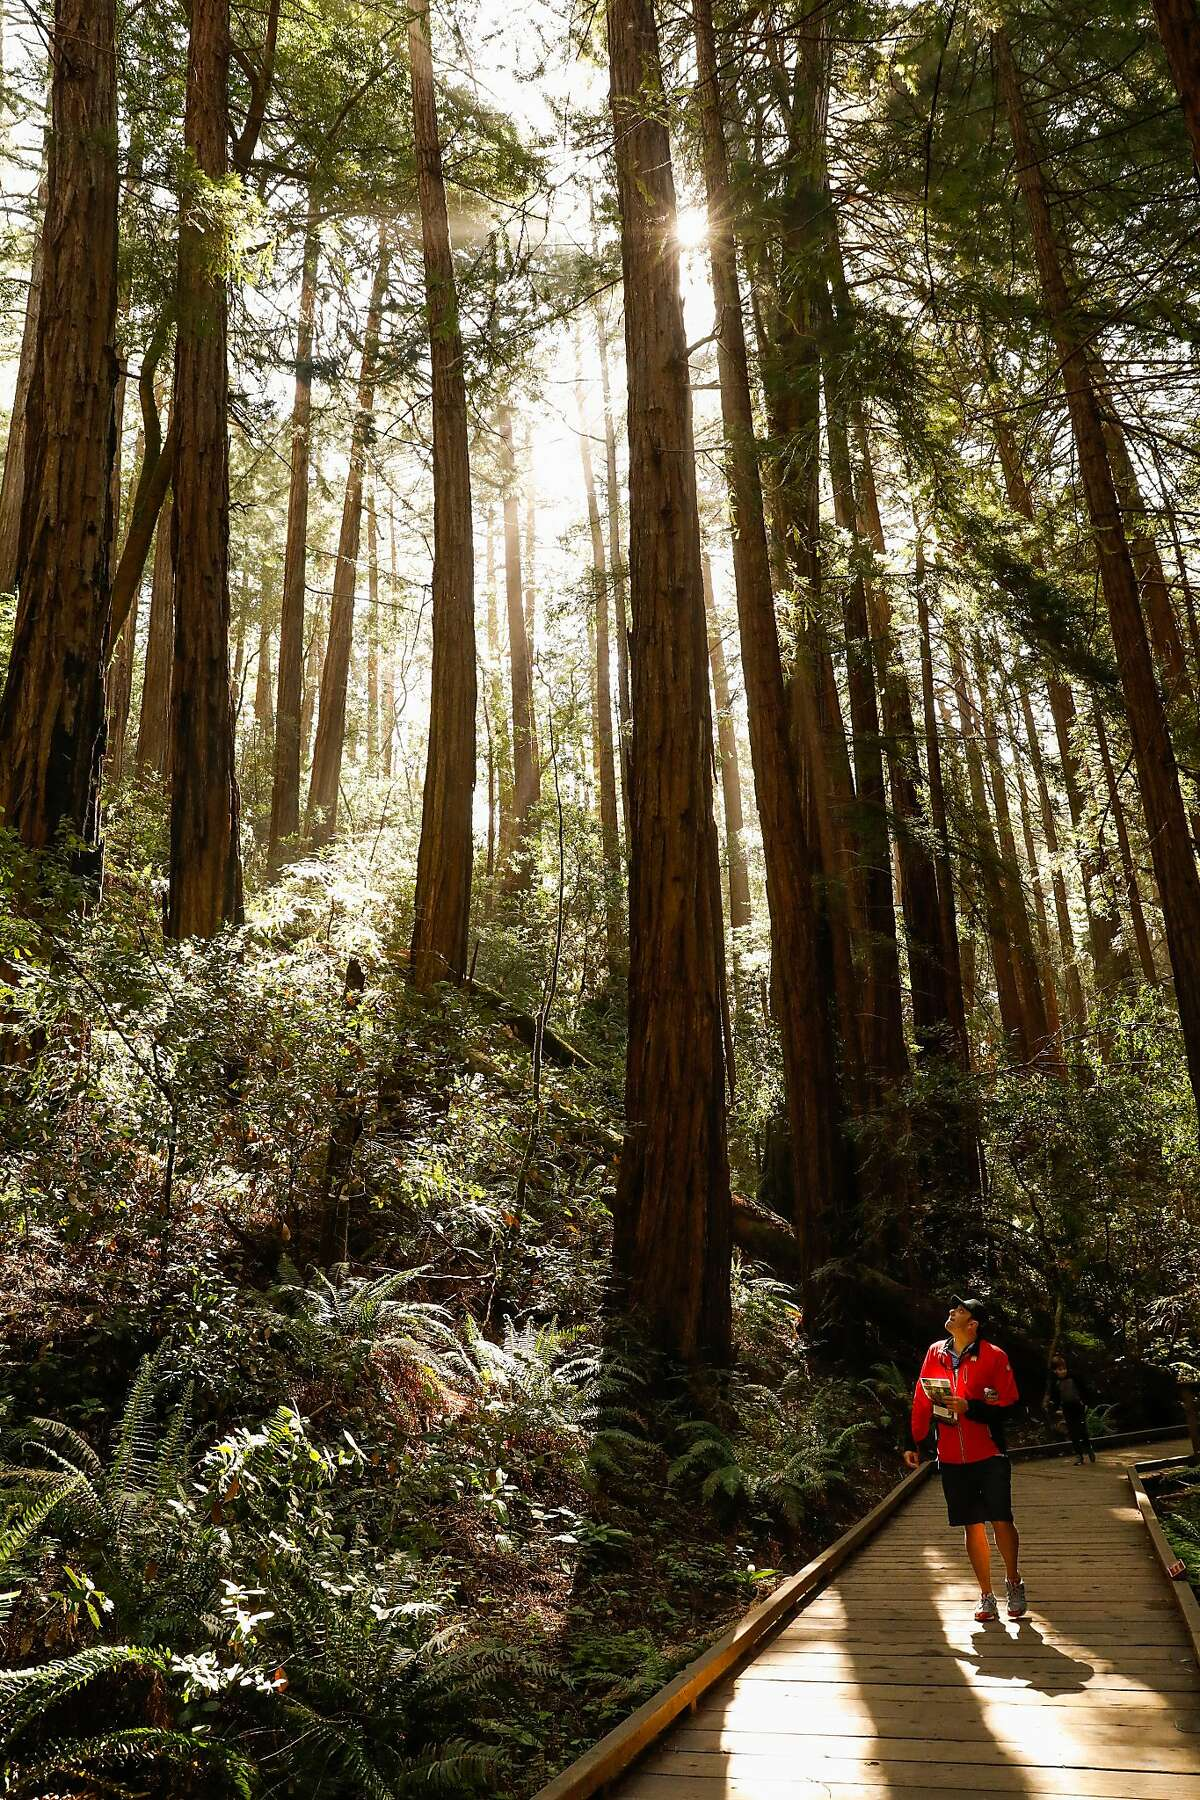 The unearthing of giant redwoods' genetic codes is viewed as a discovery that will help ancient groves like these at Muir Woods endure the extreme conditions of climate change.